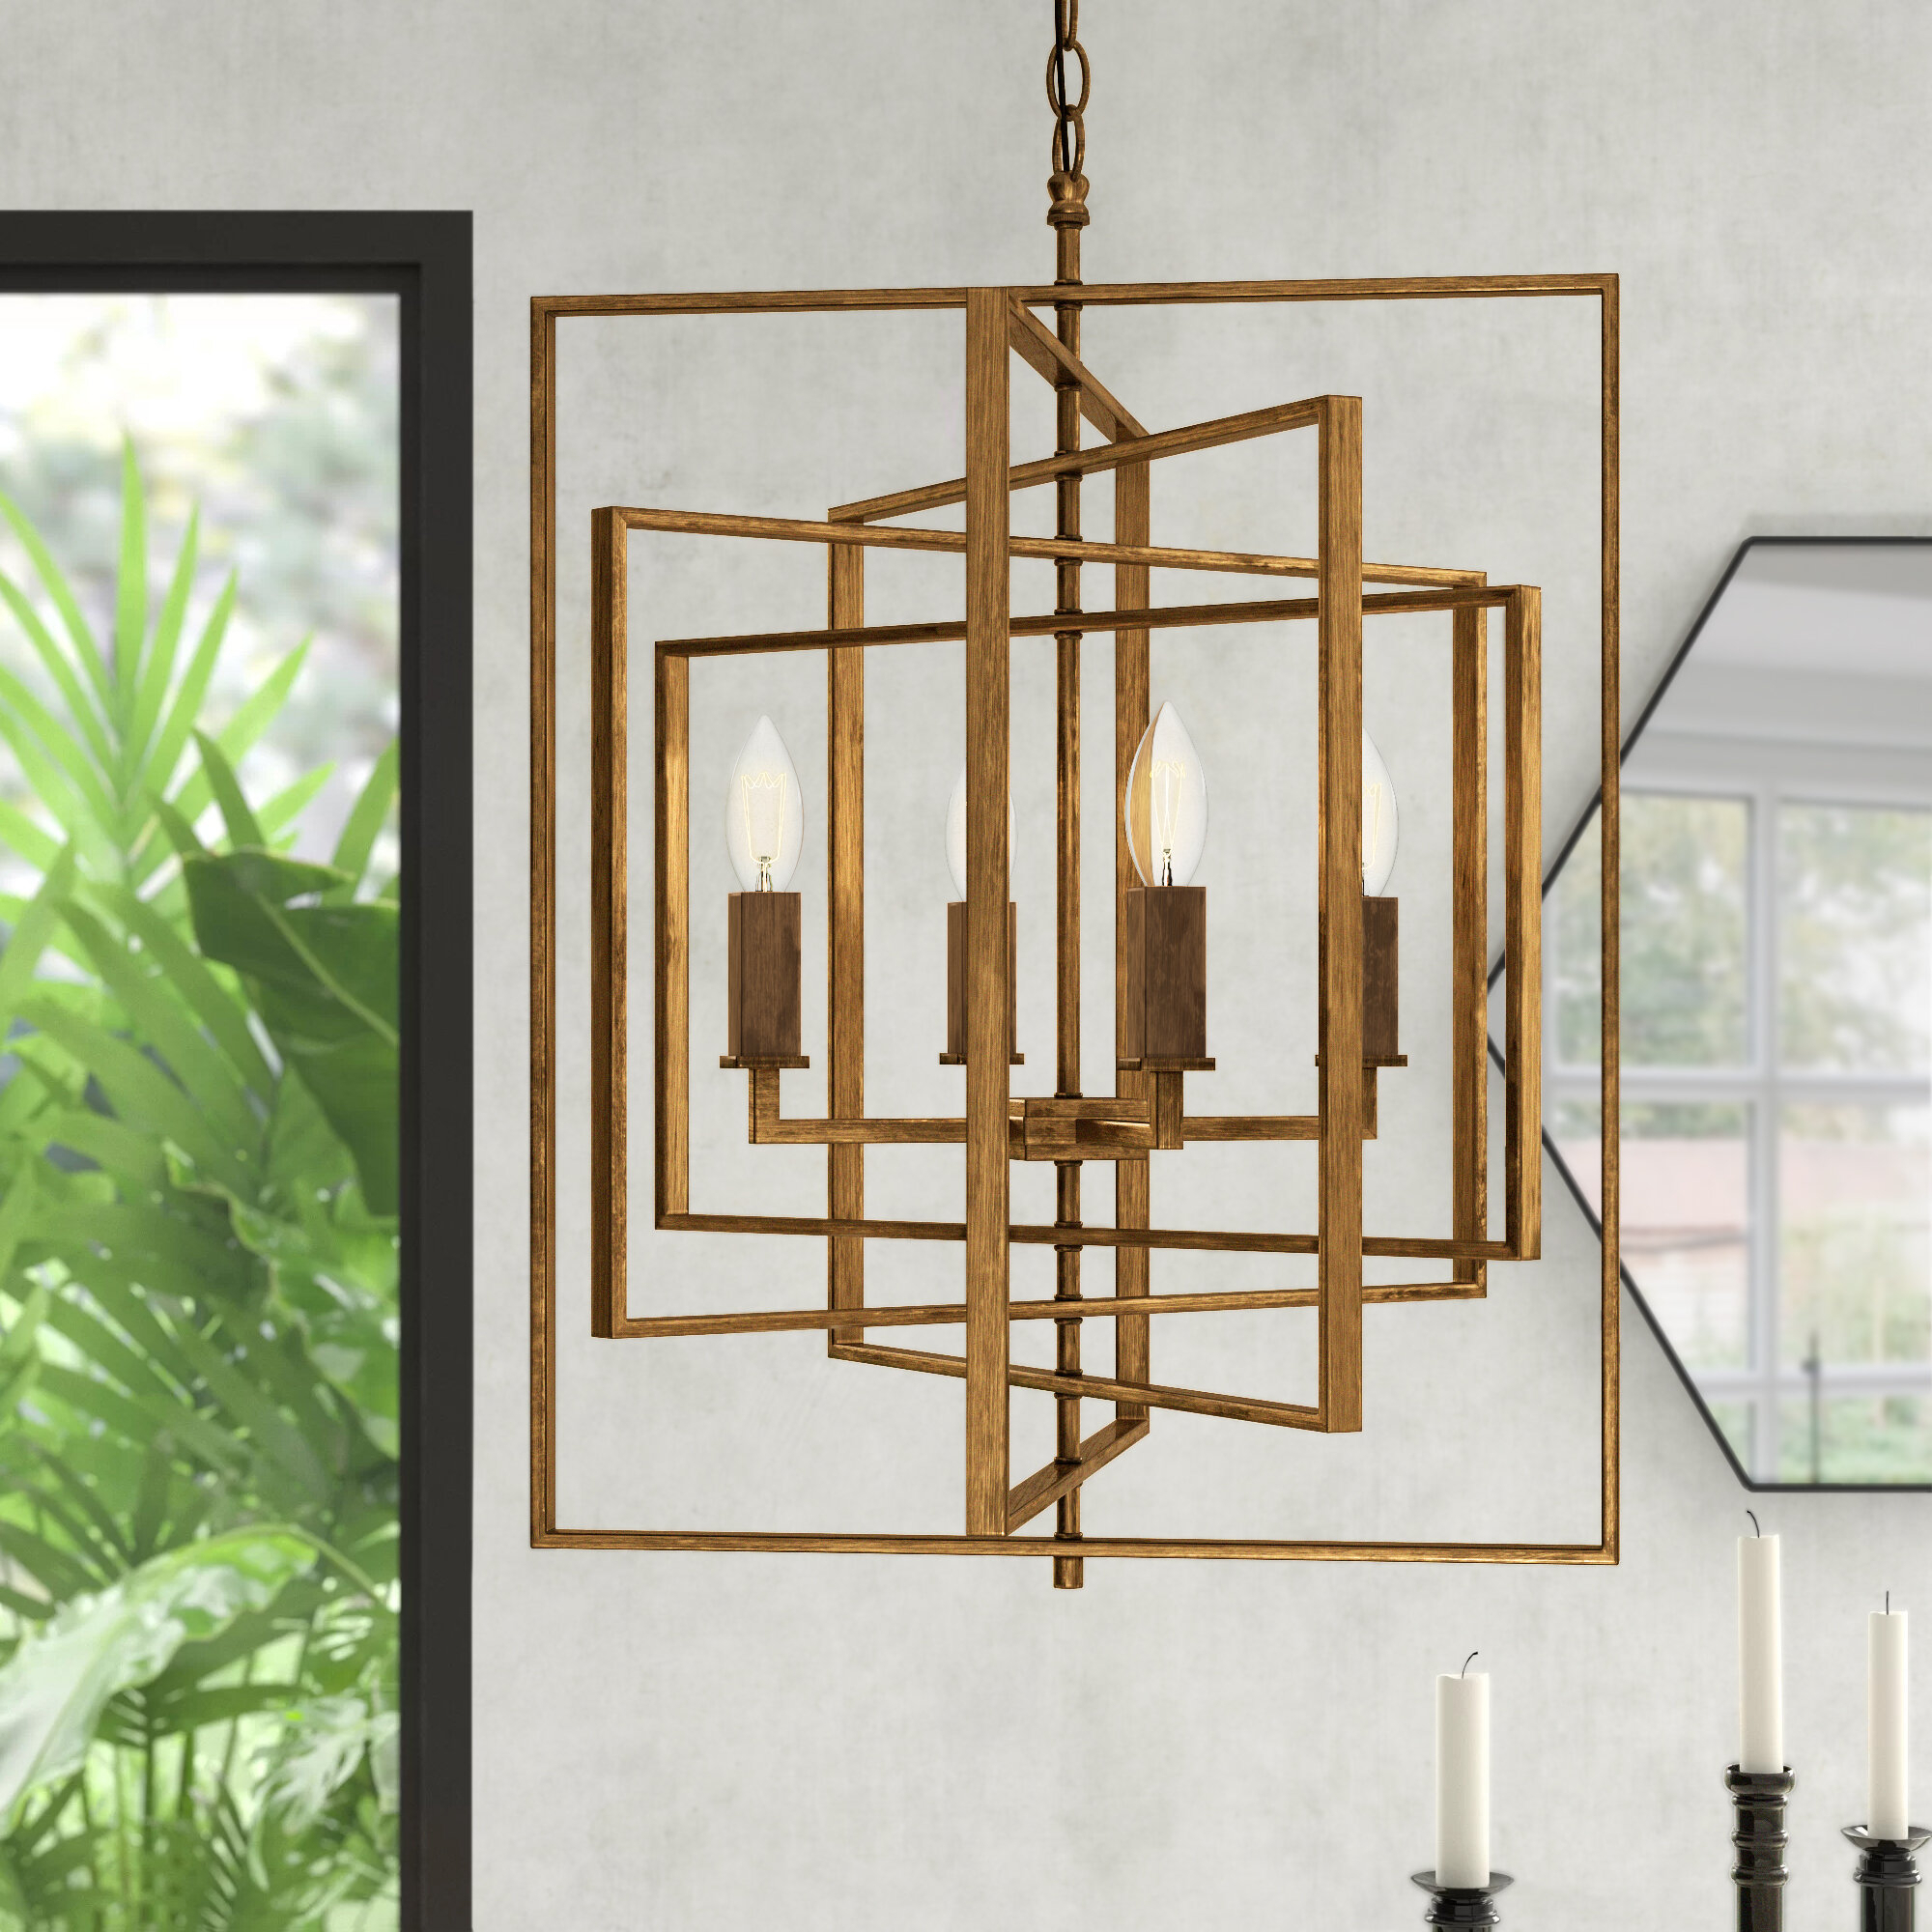 Yarnell 4-Light Square/rectangle Chandelier pertaining to Cavanagh 4-Light Geometric Chandeliers (Image 30 of 30)